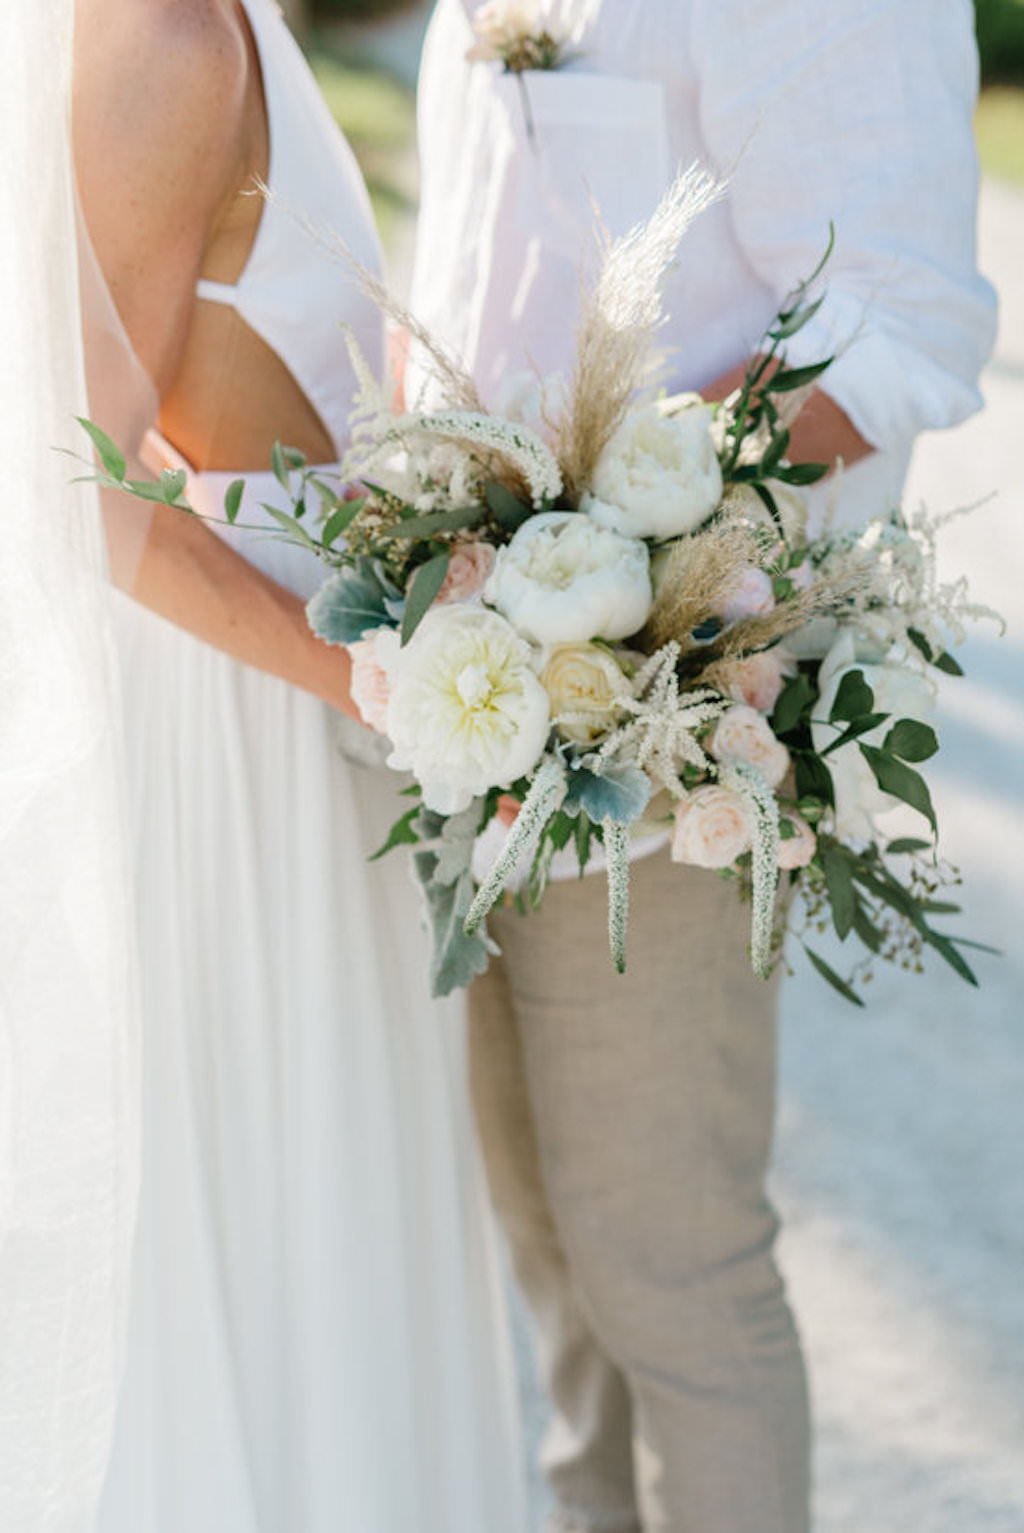 Bride and Groom Wedding Portrait with Bride's Whimsical Wedding Bouquet with Greenery | Resort at Longboat Key Club